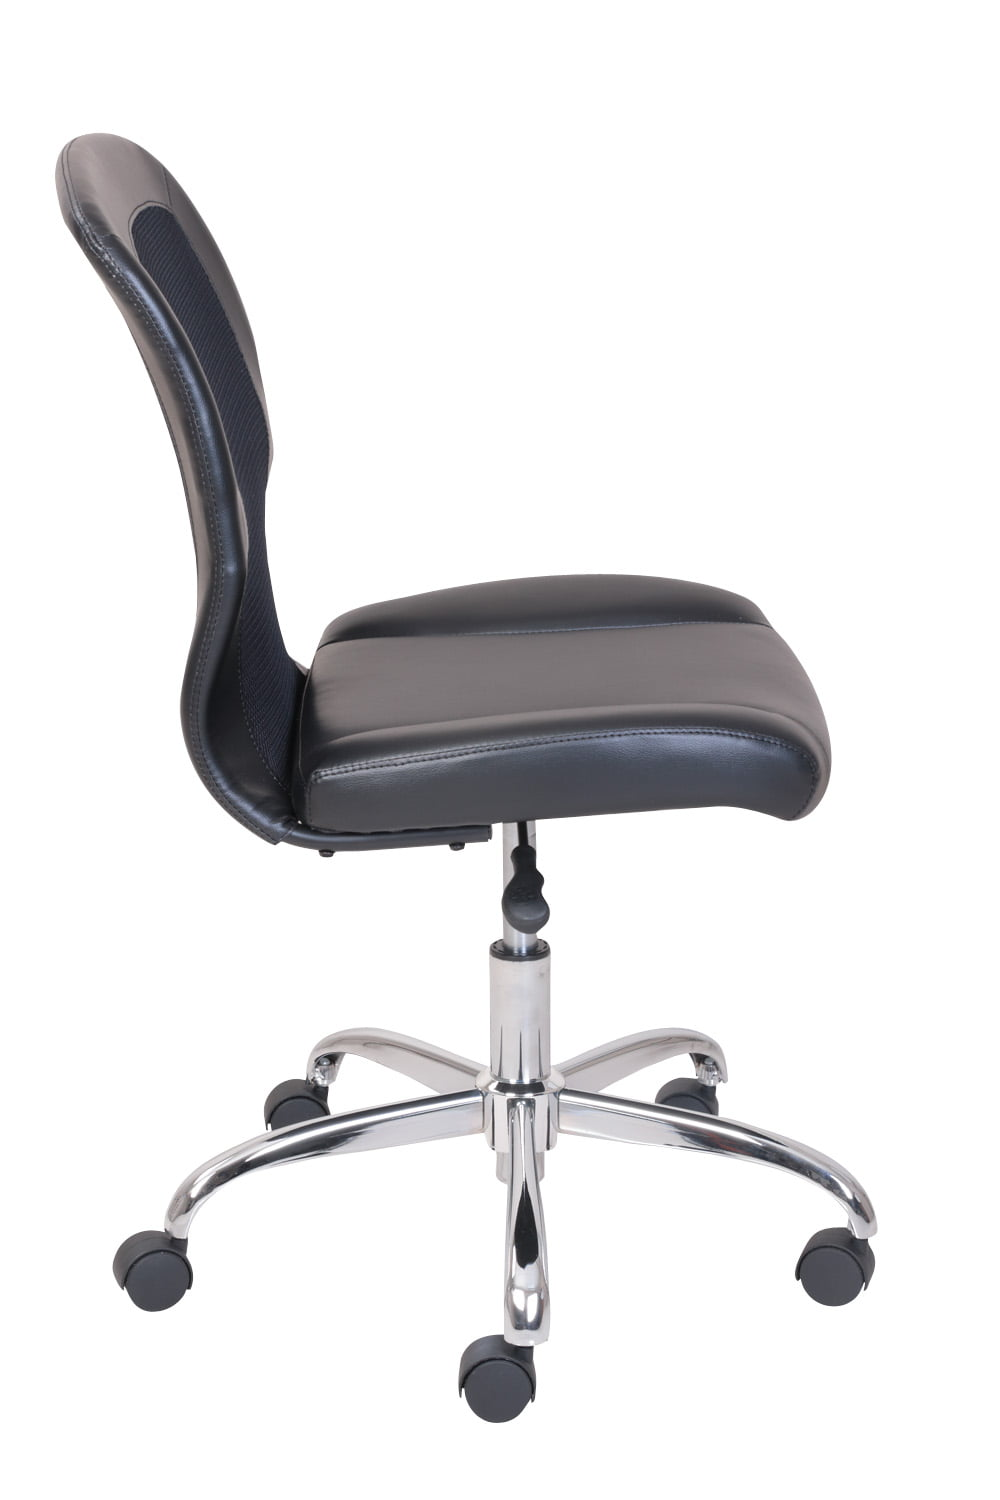 Walmart mainstays mesh back office chair leather